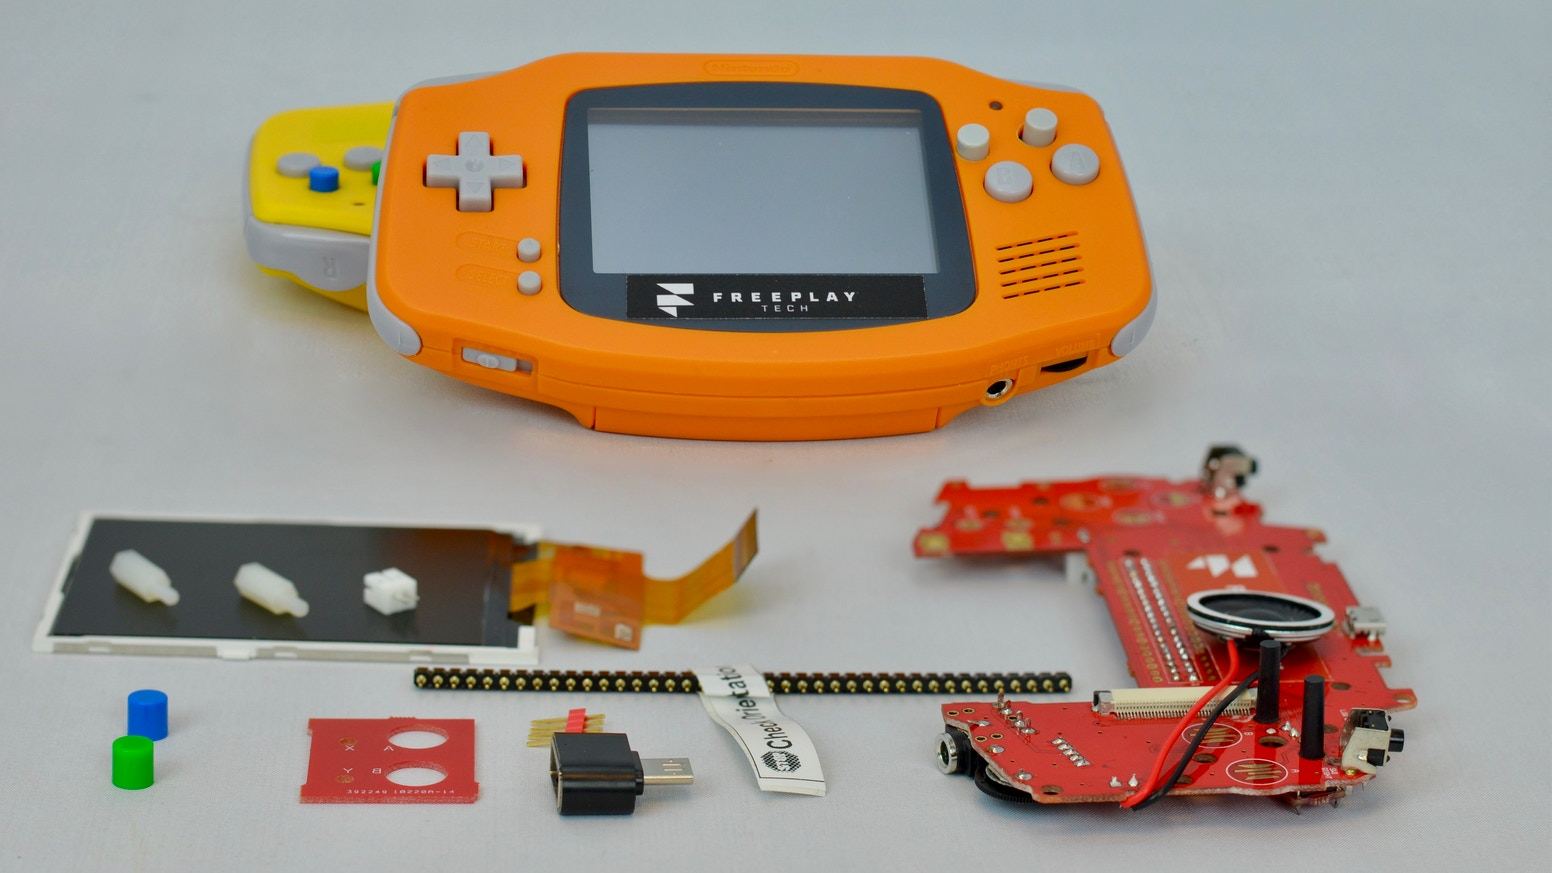 Build it!   Customize it!   Play it! Handheld Raspberry Pi retro gaming with the styling of your favorite classic videogame console.